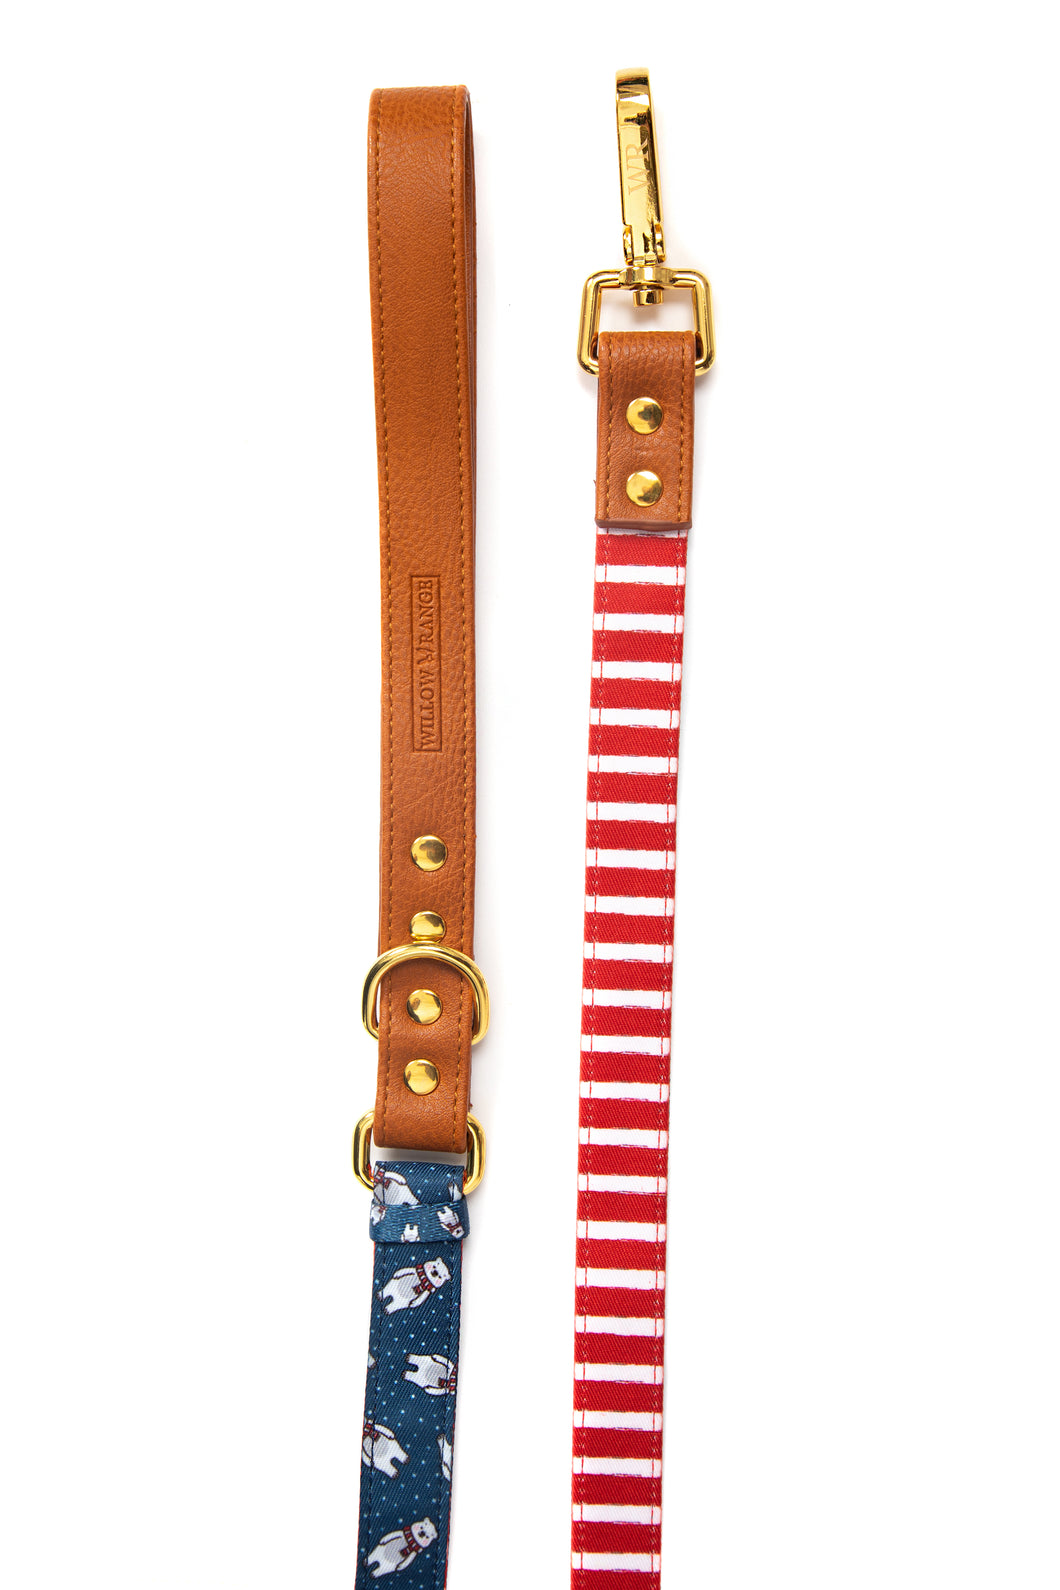 Vegan Leather adjustable dog leash with Gold Fittings `Winter Bear-  Luxury Range